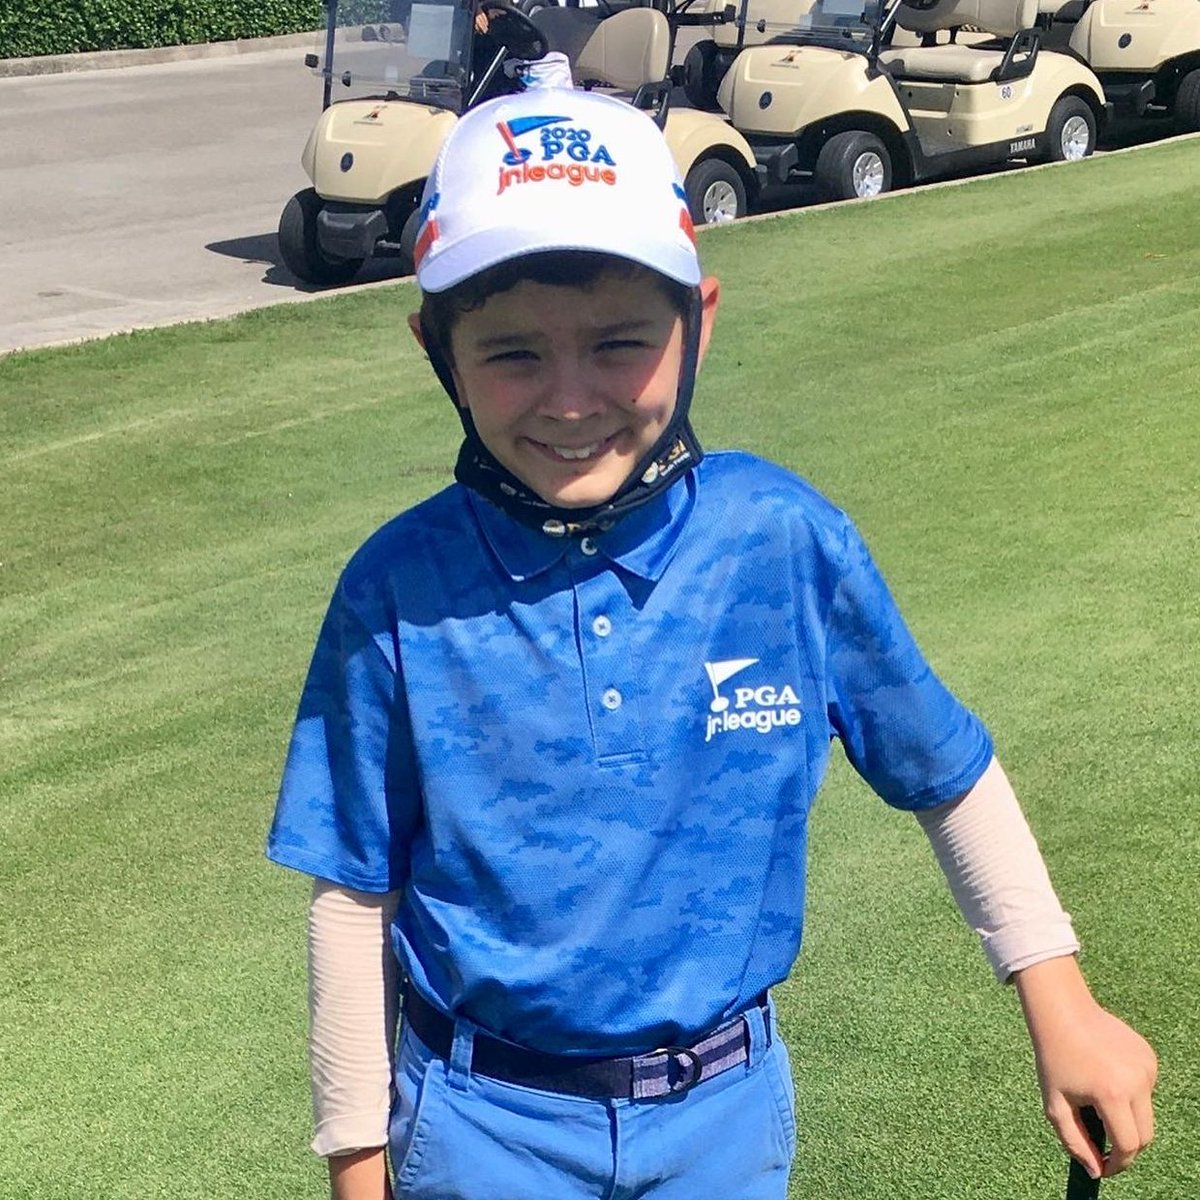 Tino (age 8) loves PGA Jr. League because he make new friends and has loads of fun while still being competitive!